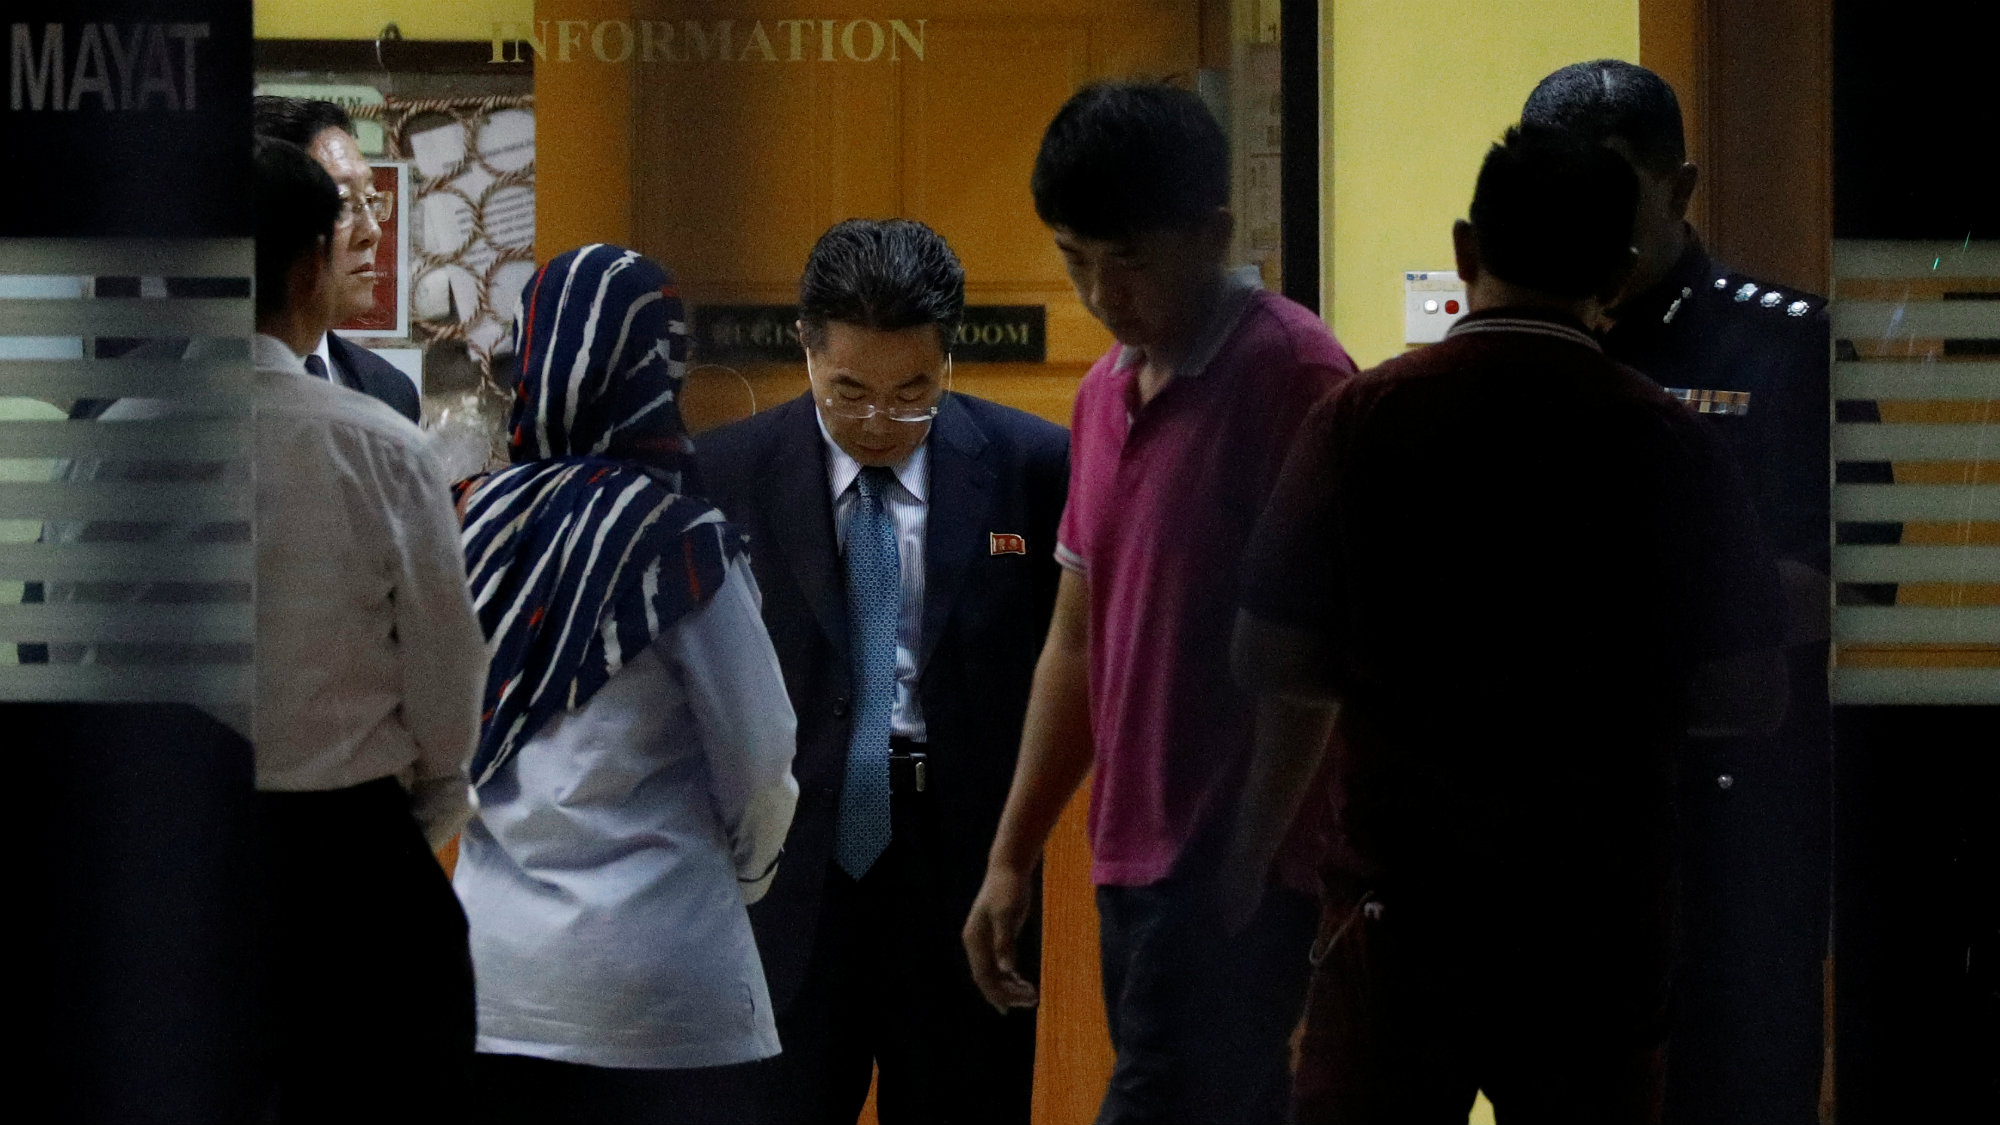 A North Korea official speaks with officials at the morgue in Kuala Lumpur where Kim Jong-nam's body is being held.